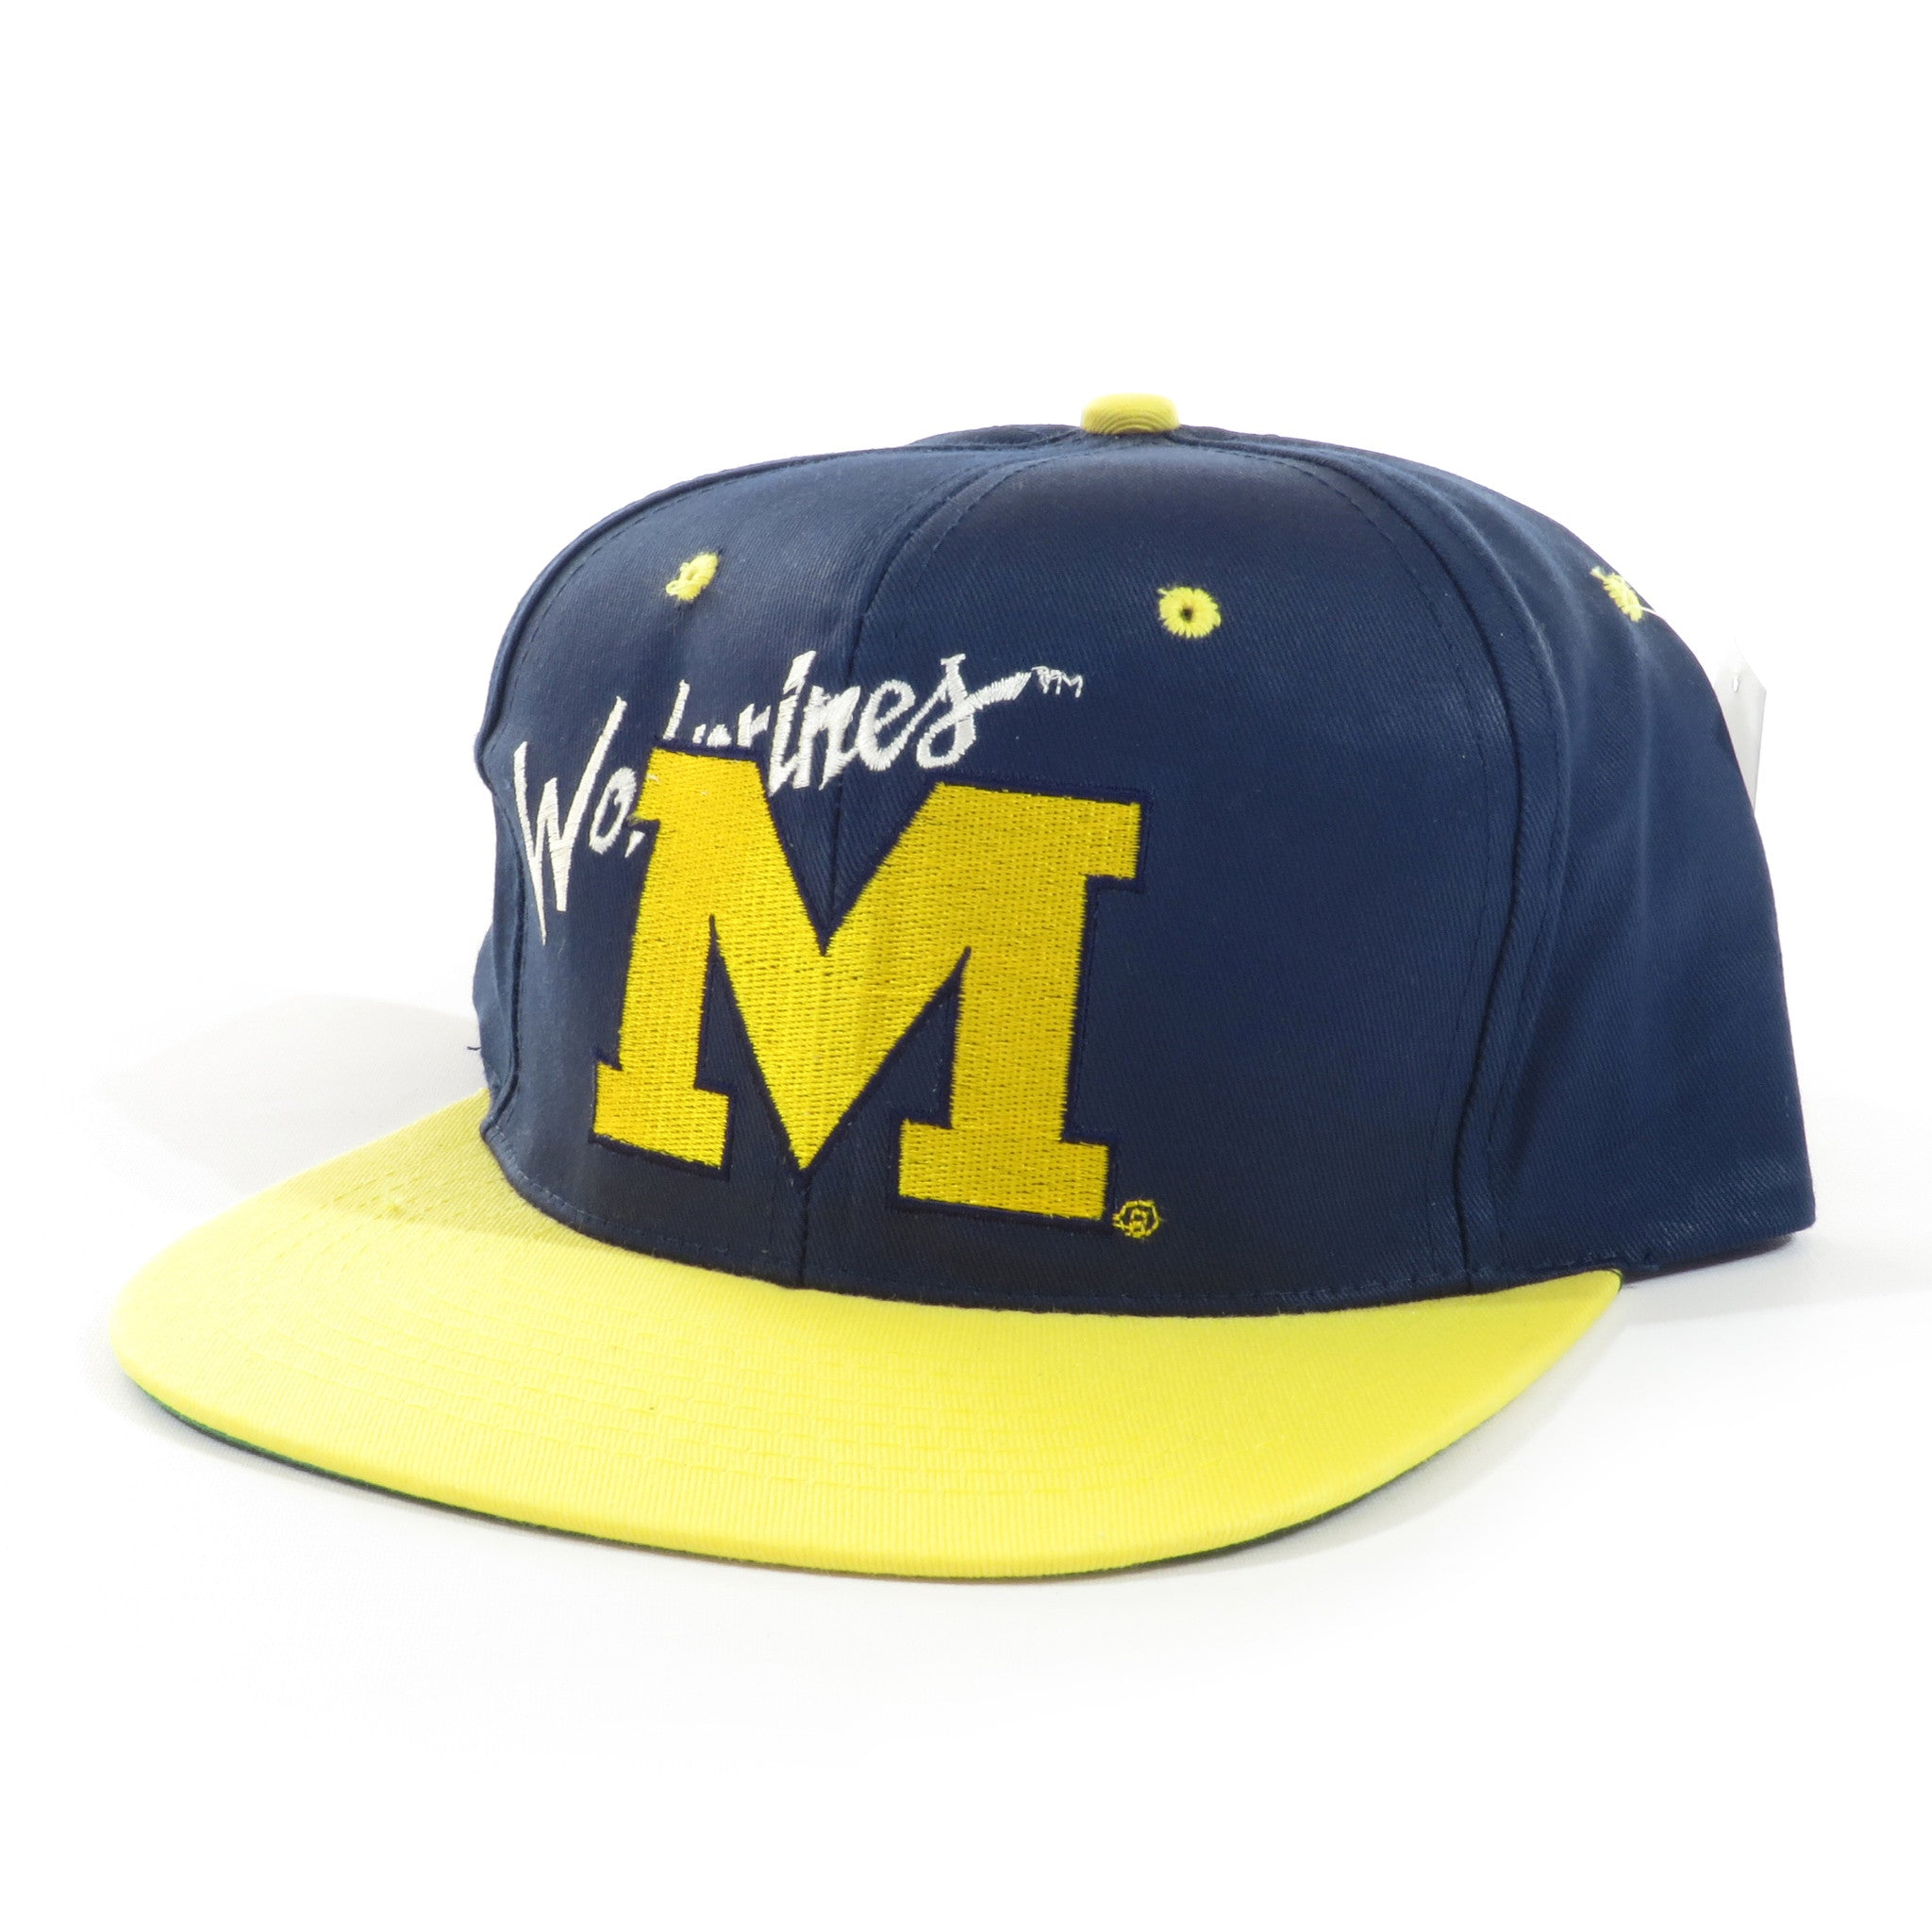 Michigan Wolverines Snapback Hat